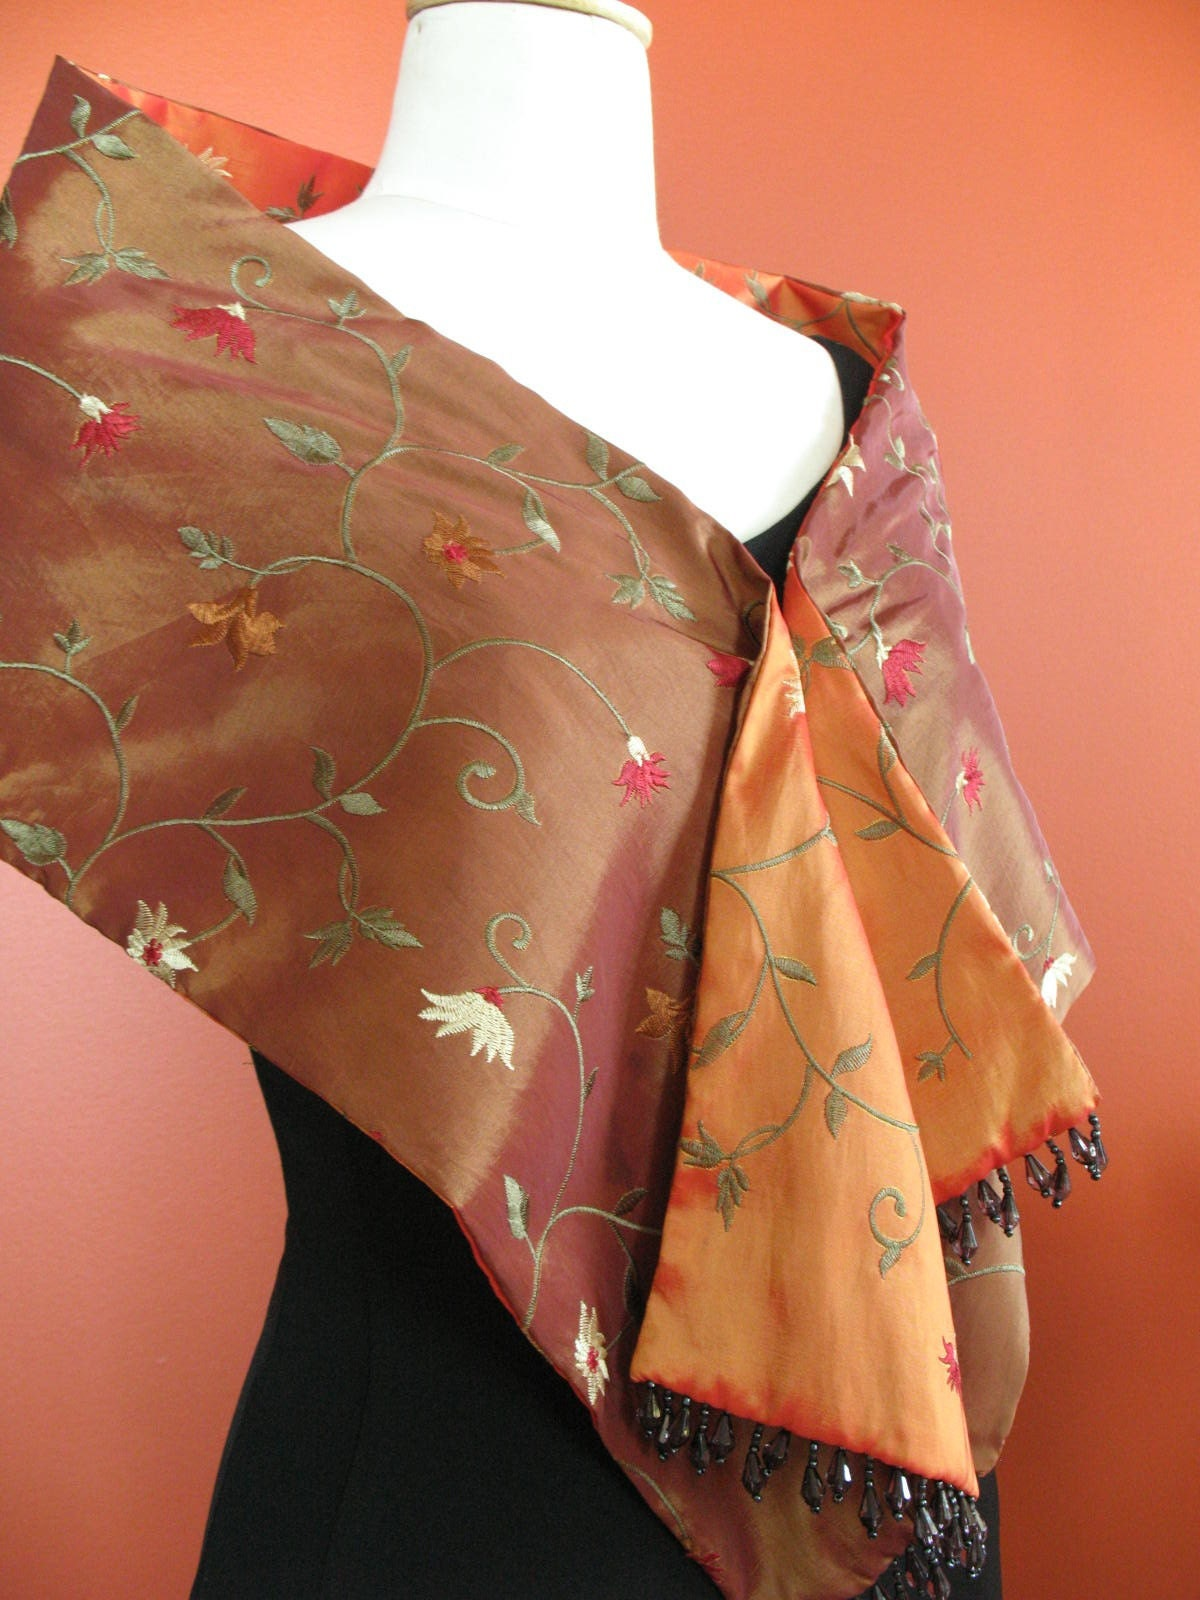 Tibet reversible embroidered taffetta scarf : Asian iCandy Store, Unique Asian Arts and Gifts From Independent Artists :  indie tibet asian asian-inspired